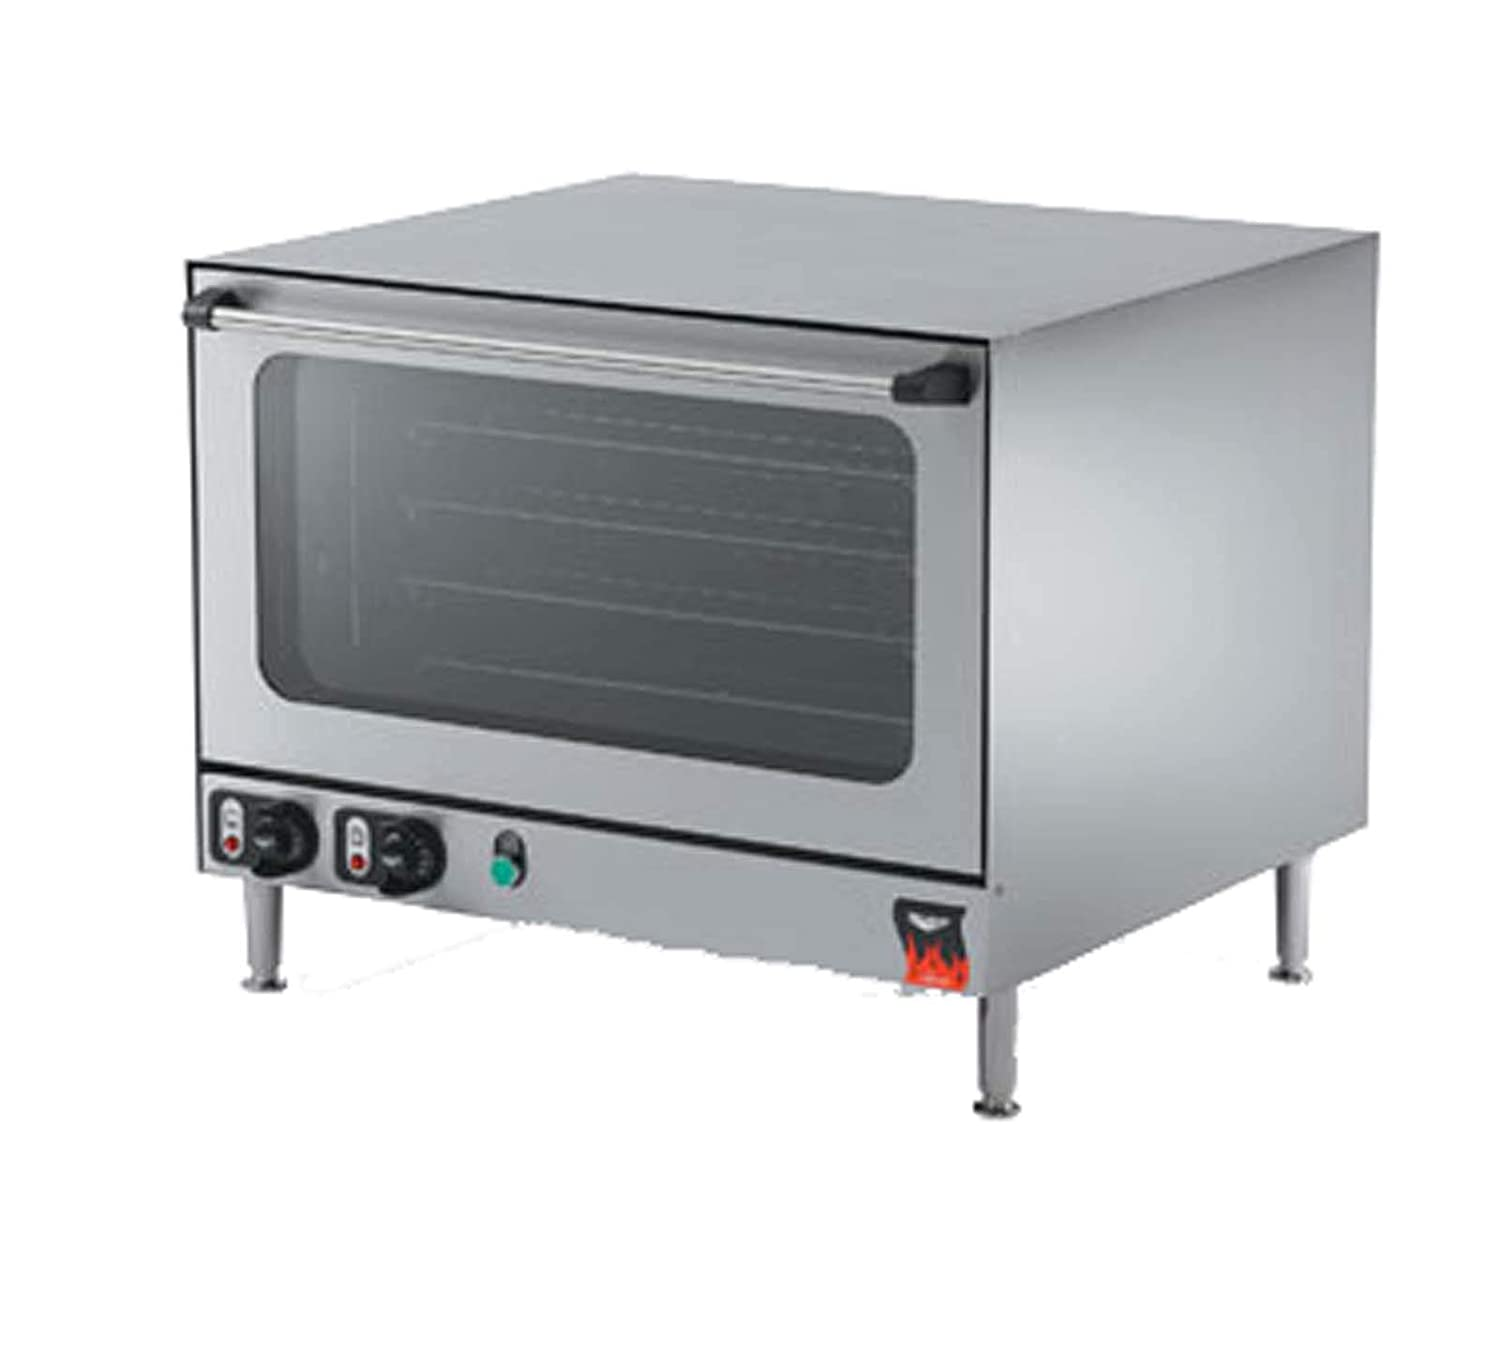 Vollrath 40702 32-15 16 Full-Size Electric Countertop Convection Oven – Cayenne Ser